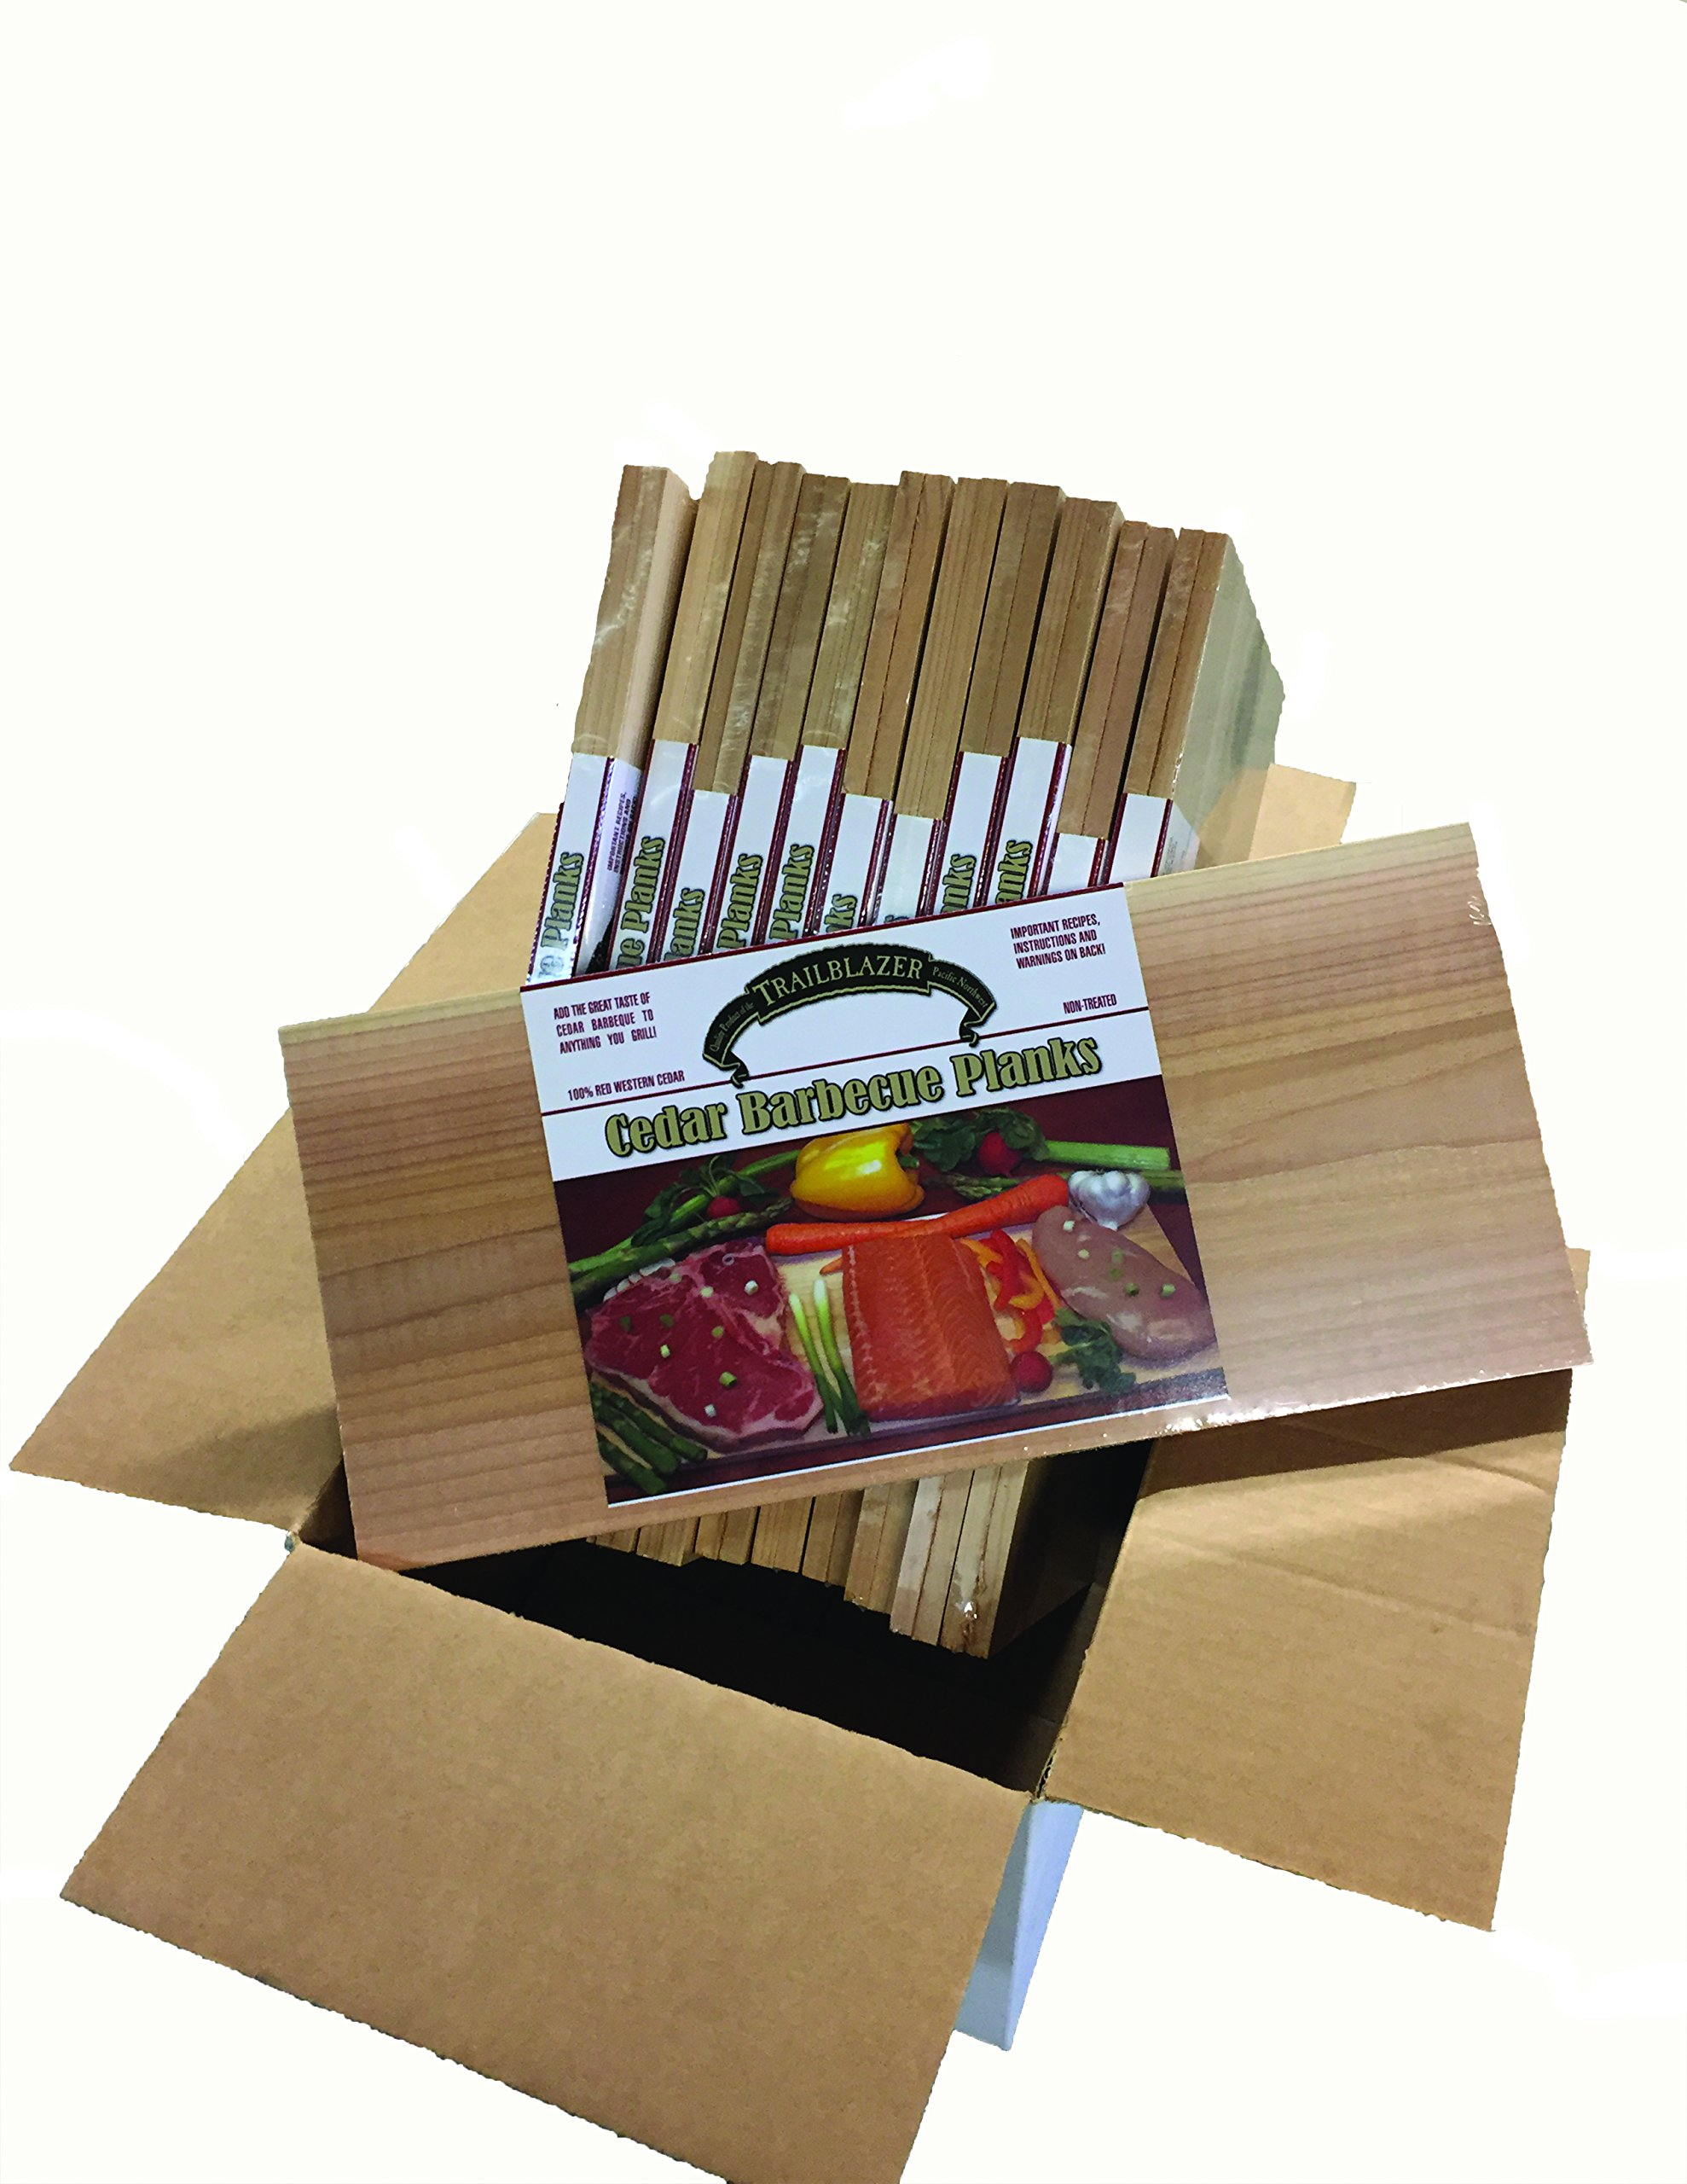 Case of Gourmet Cedar Grilling Planks (15'' x 7'' x 3/8'') 2 Packs Packaged for Resale (24 Boards Total) by Cascade Gourmet